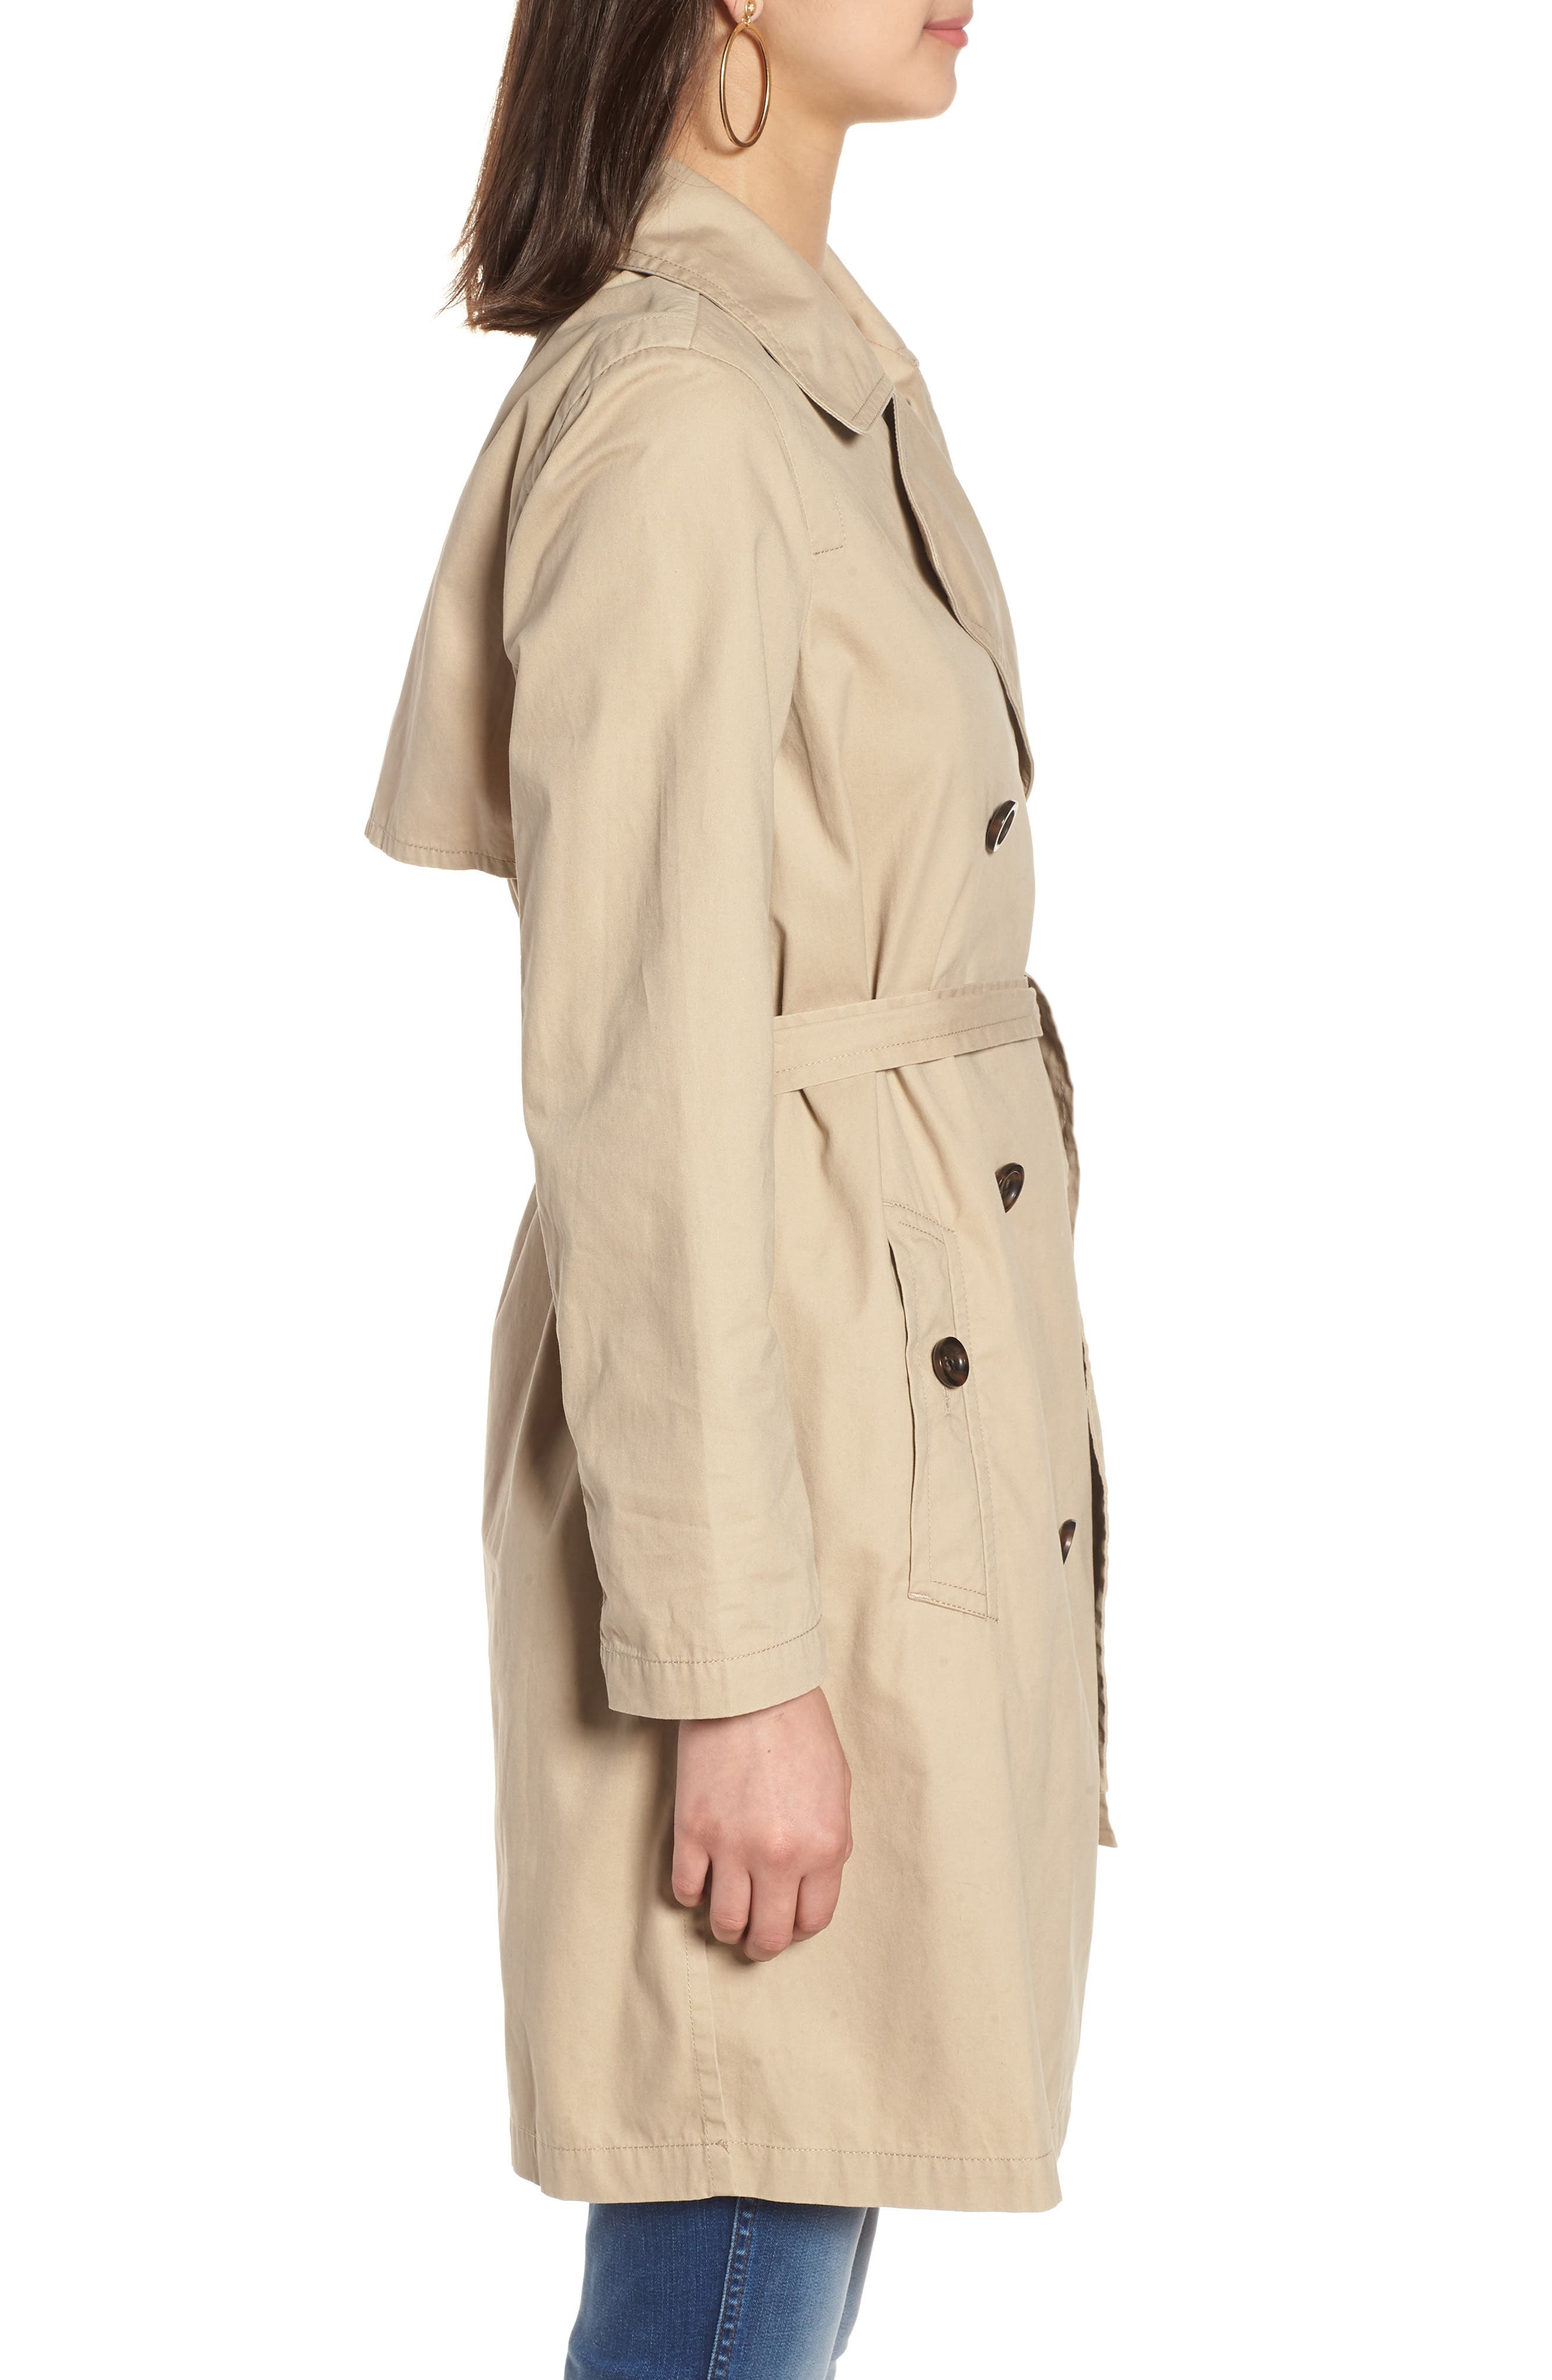 MADEWELL,                             Abroad Trench Coat,                             Alternate thumbnail 3, color,                             250